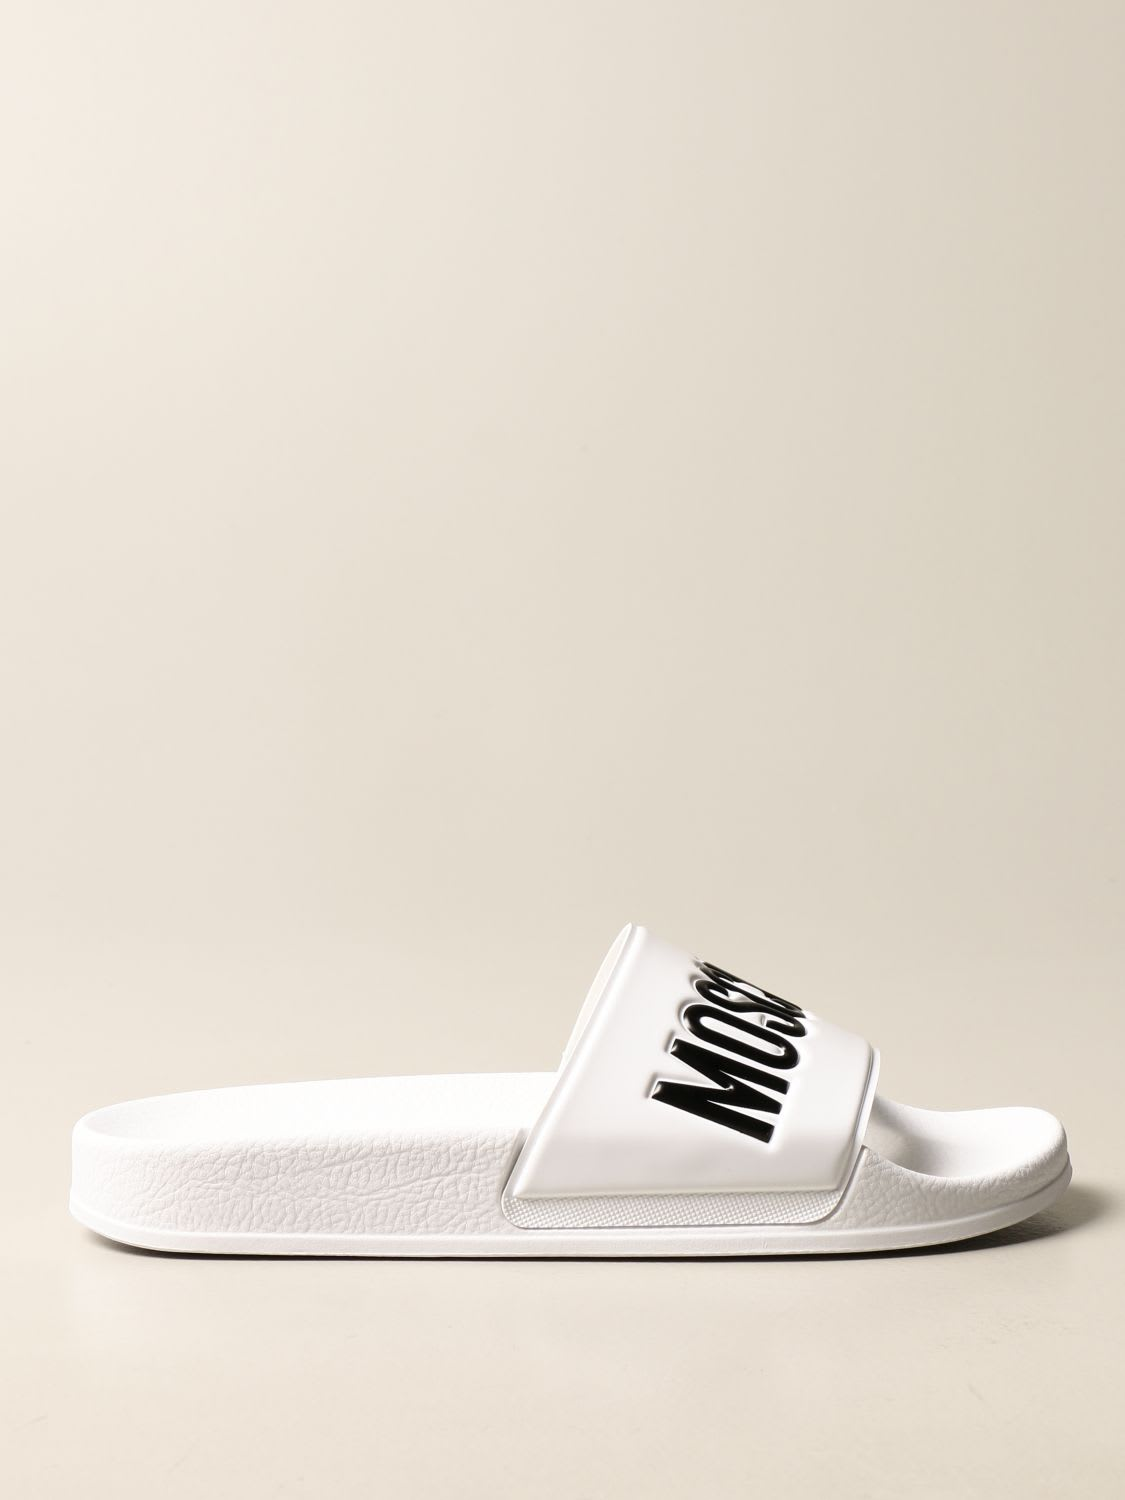 Moschino Couture Flat Sandals Moschino Couture Rubber Sandal With Logo